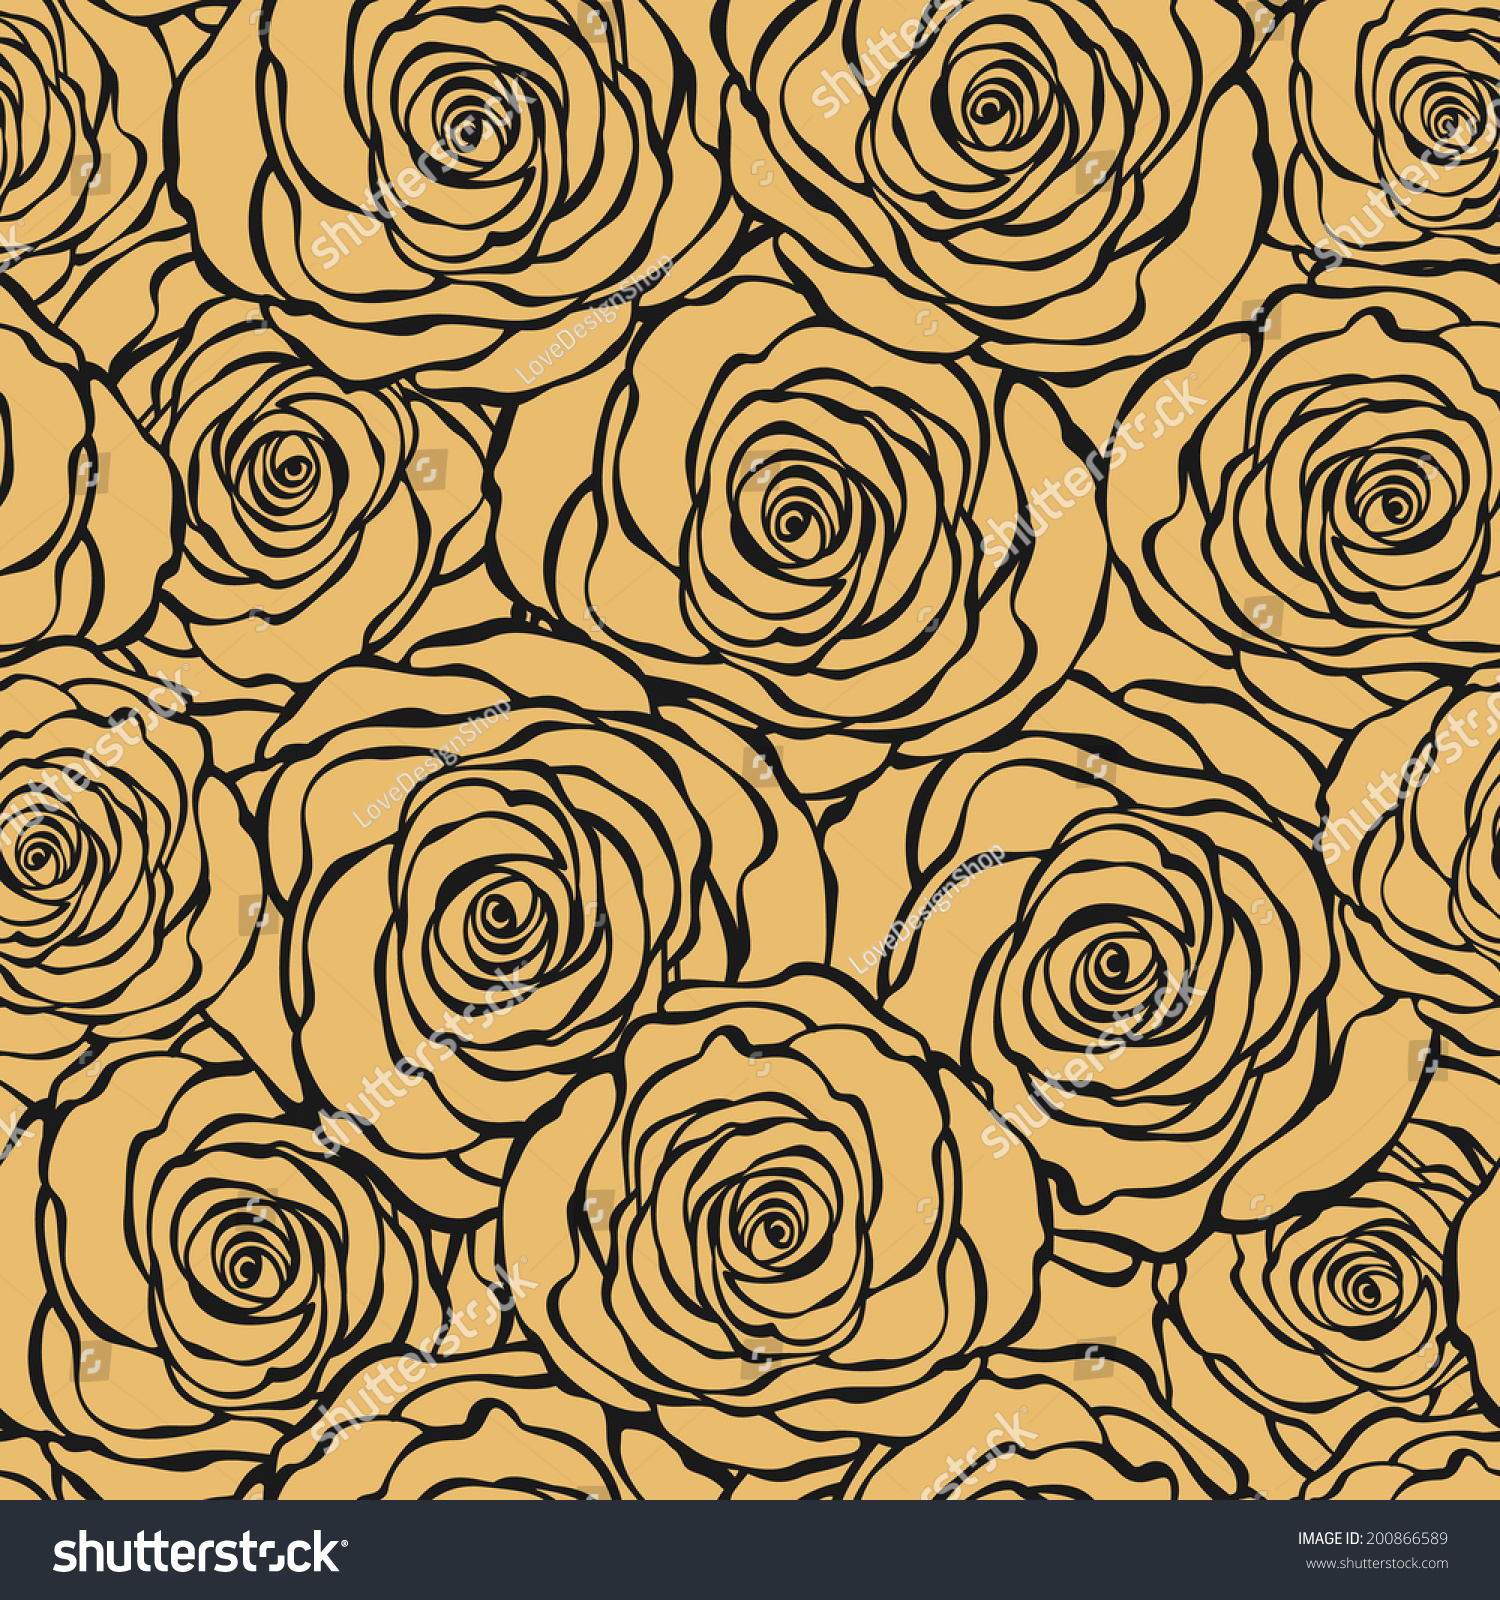 Art Deco Floral Seamless Pattern Roses Stock Vector Royalty Free